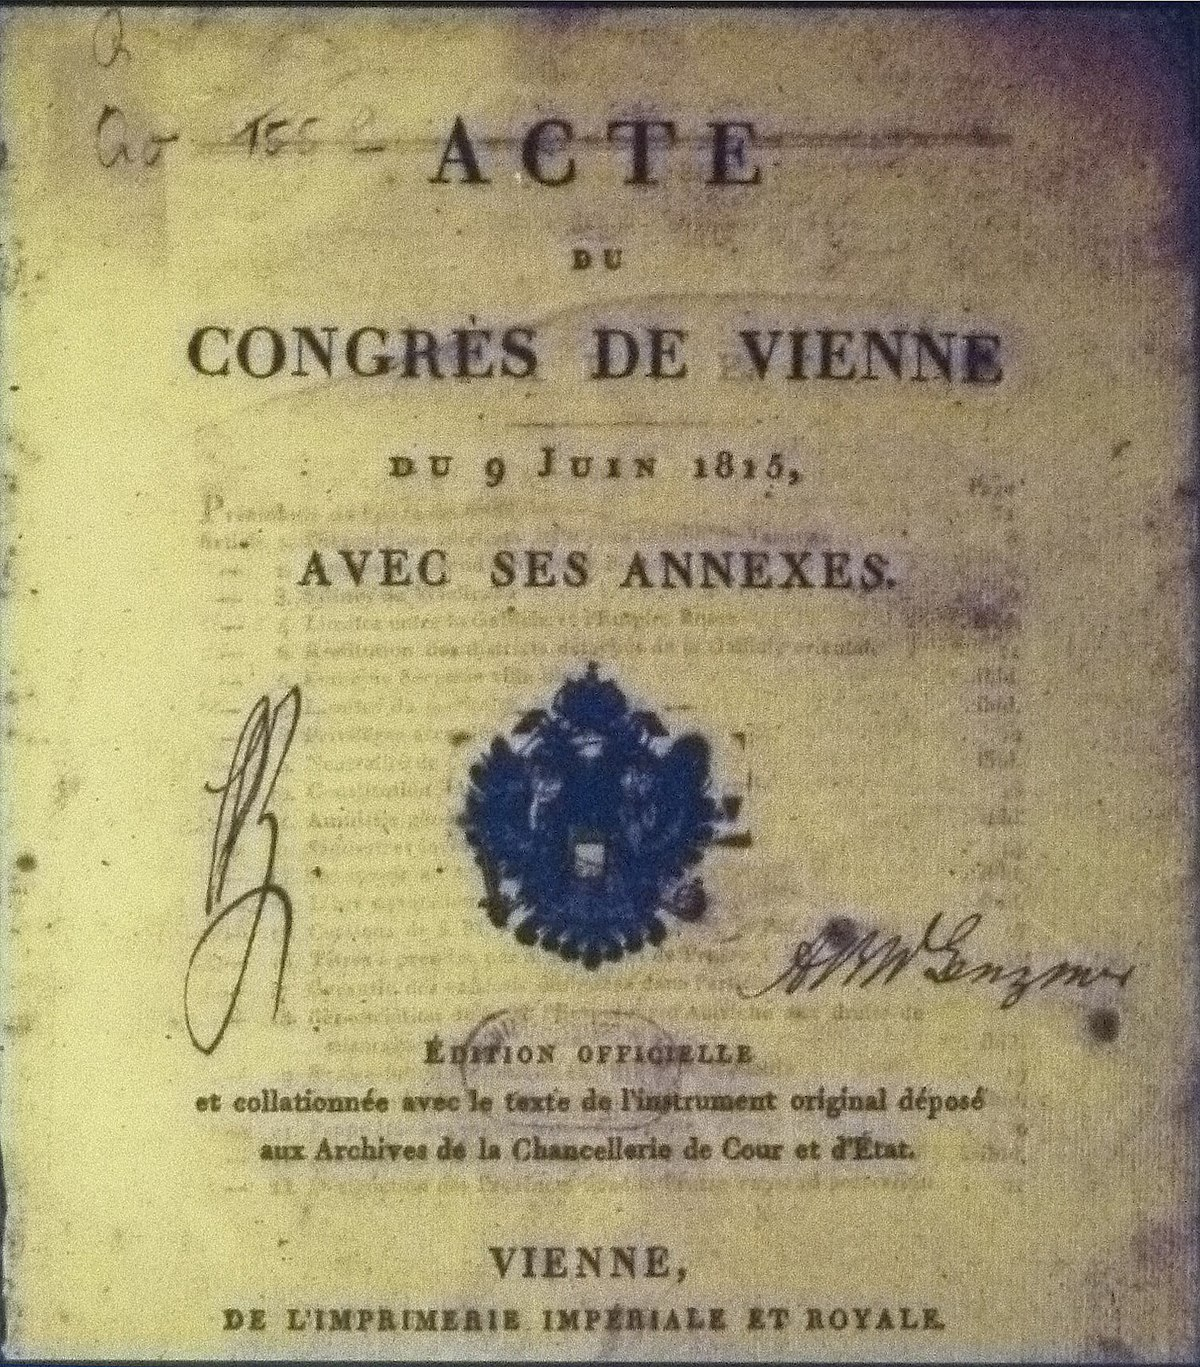 congress of vienna 1815 Congress of vienna in 1815 research papers discuss the meetings of the major european powers that met in vienna from september 1814 to june 1815.